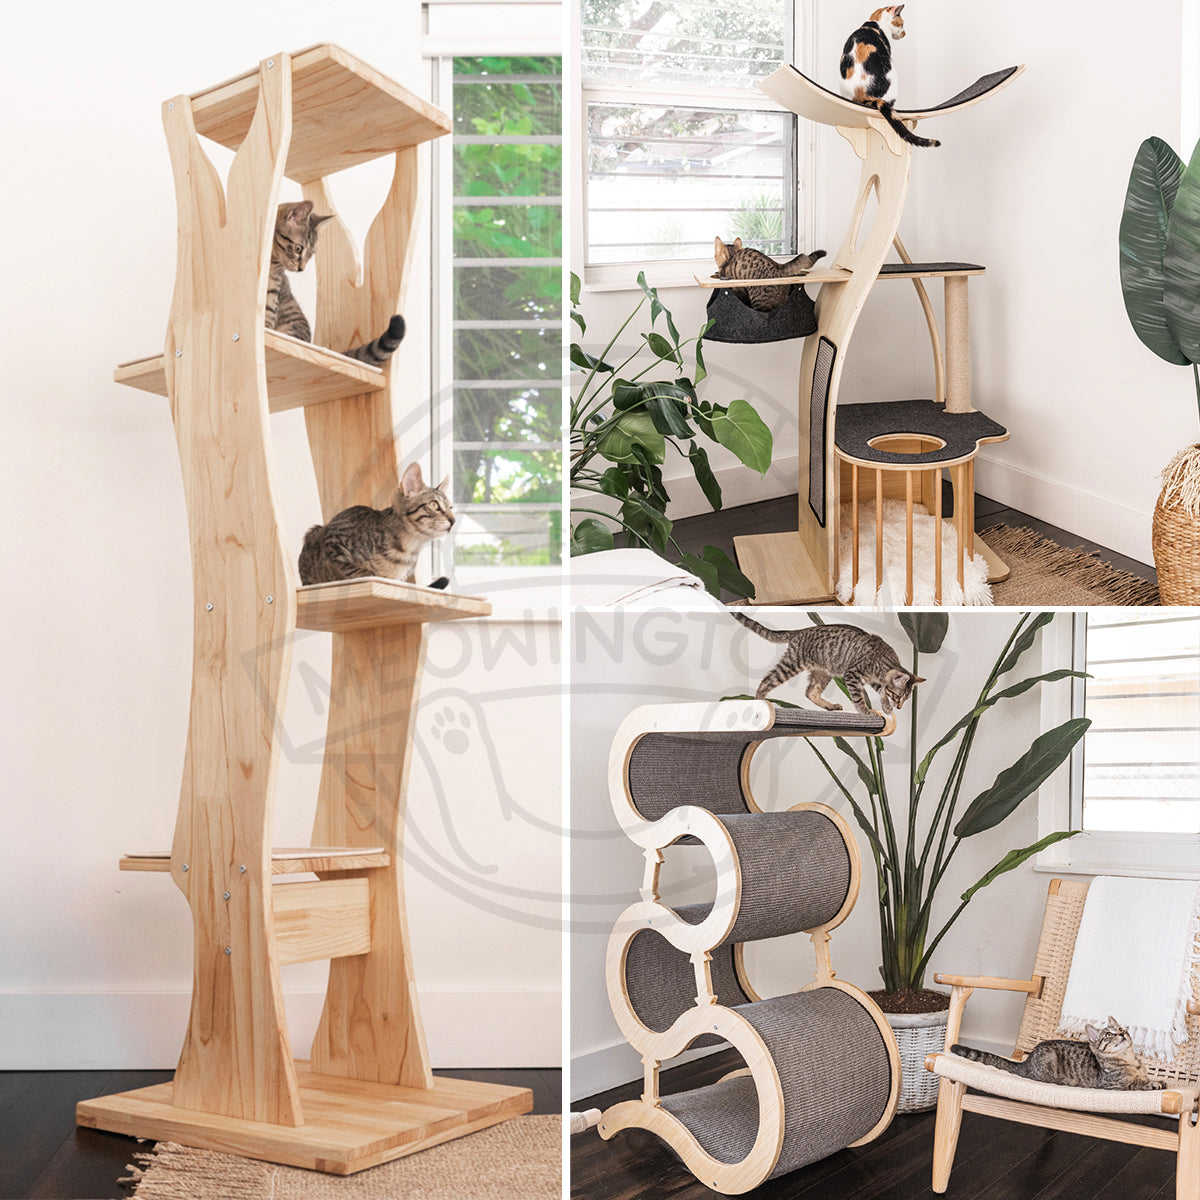 Introducing Ultra-Modern Cat Trees You AND Your Cat Will Love